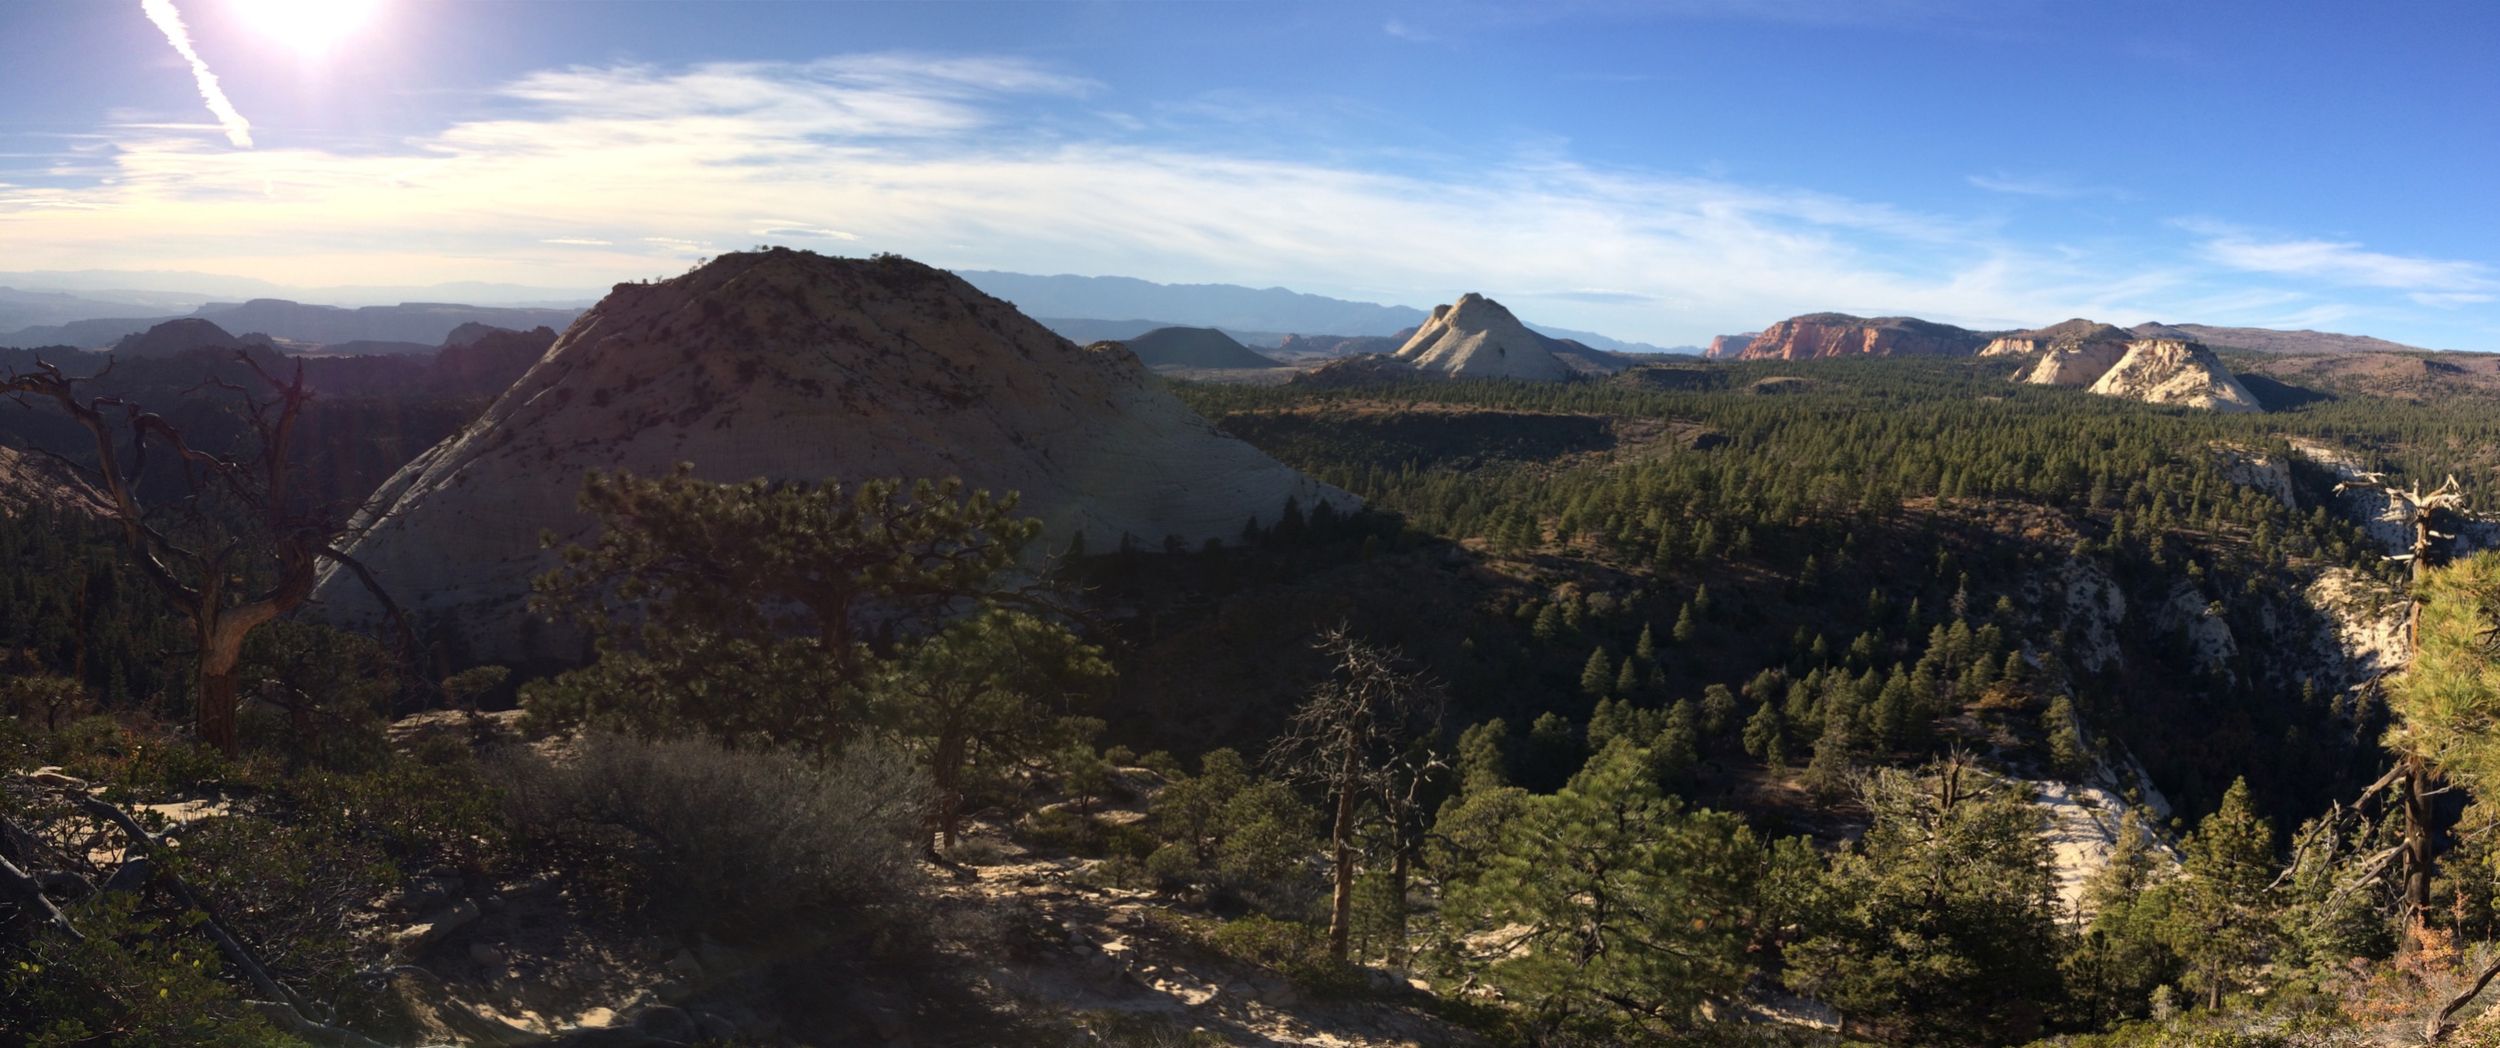 iPhone pano from atop East Northgate Peak.  The rounded summit in the left mid ground is West Northgate Peak.  The isolated white peak in the distance just right of center is Pine Valley Peak.